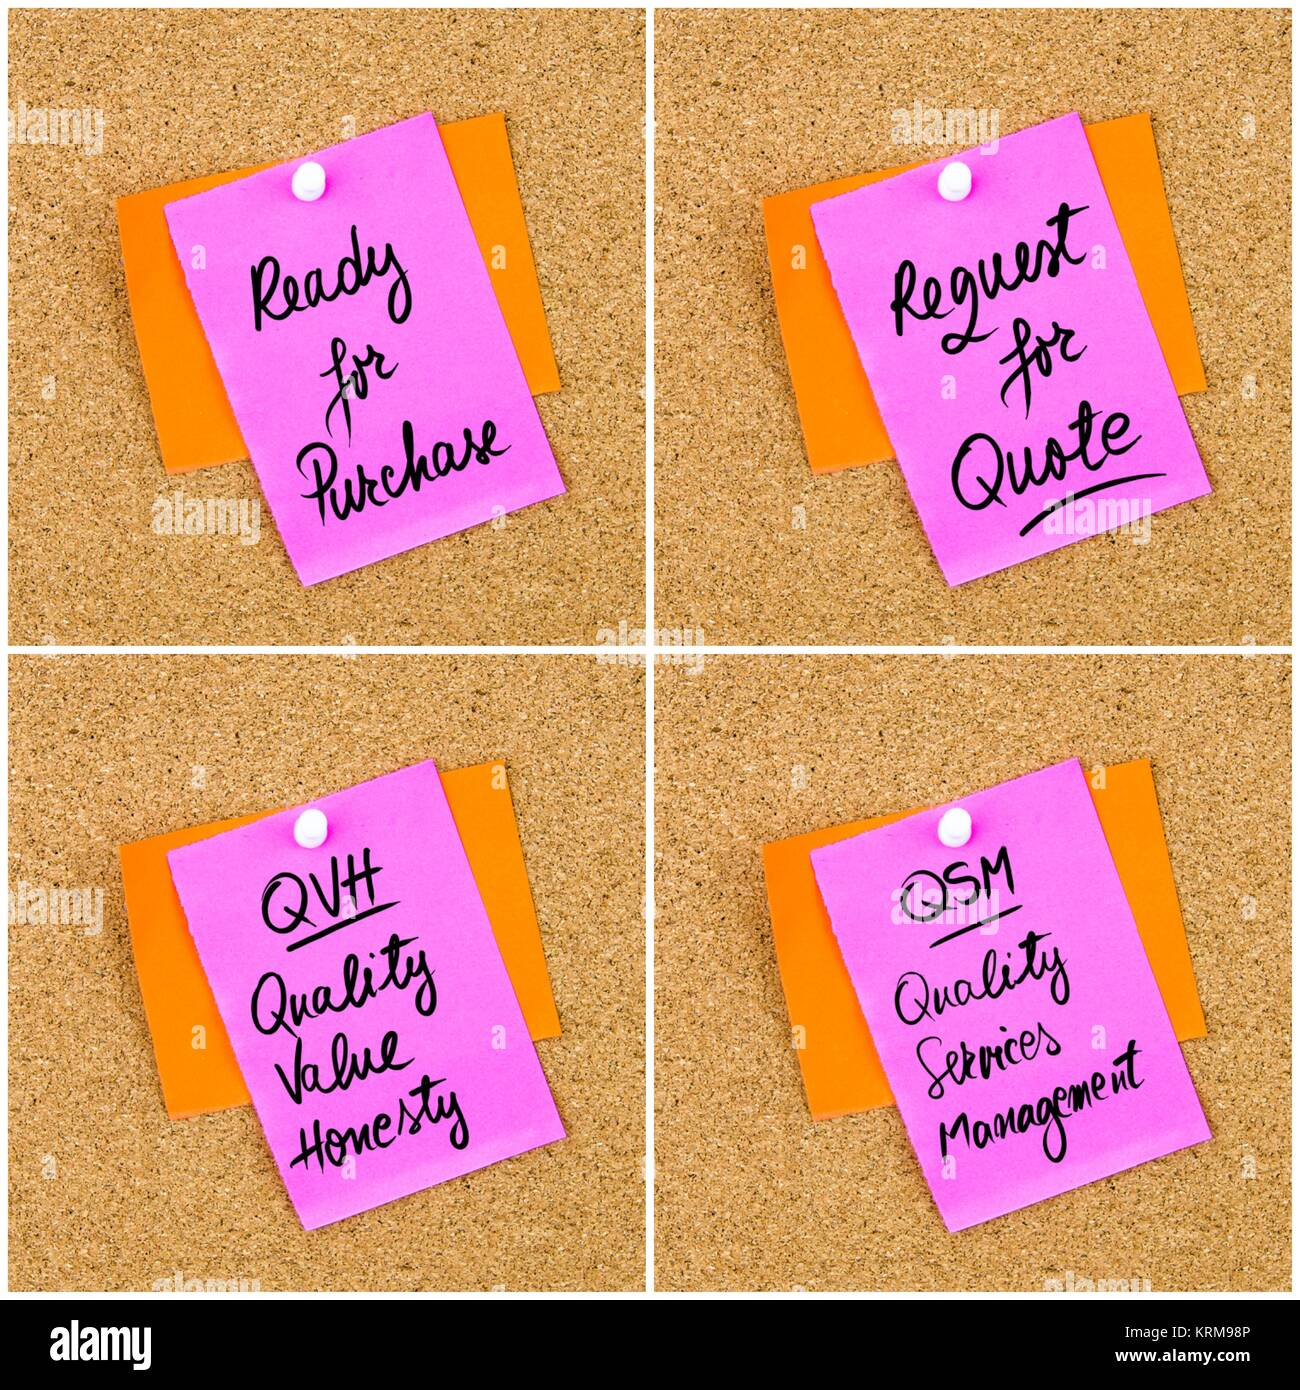 Collage of Business Acronyms written on paper note - Stock Image